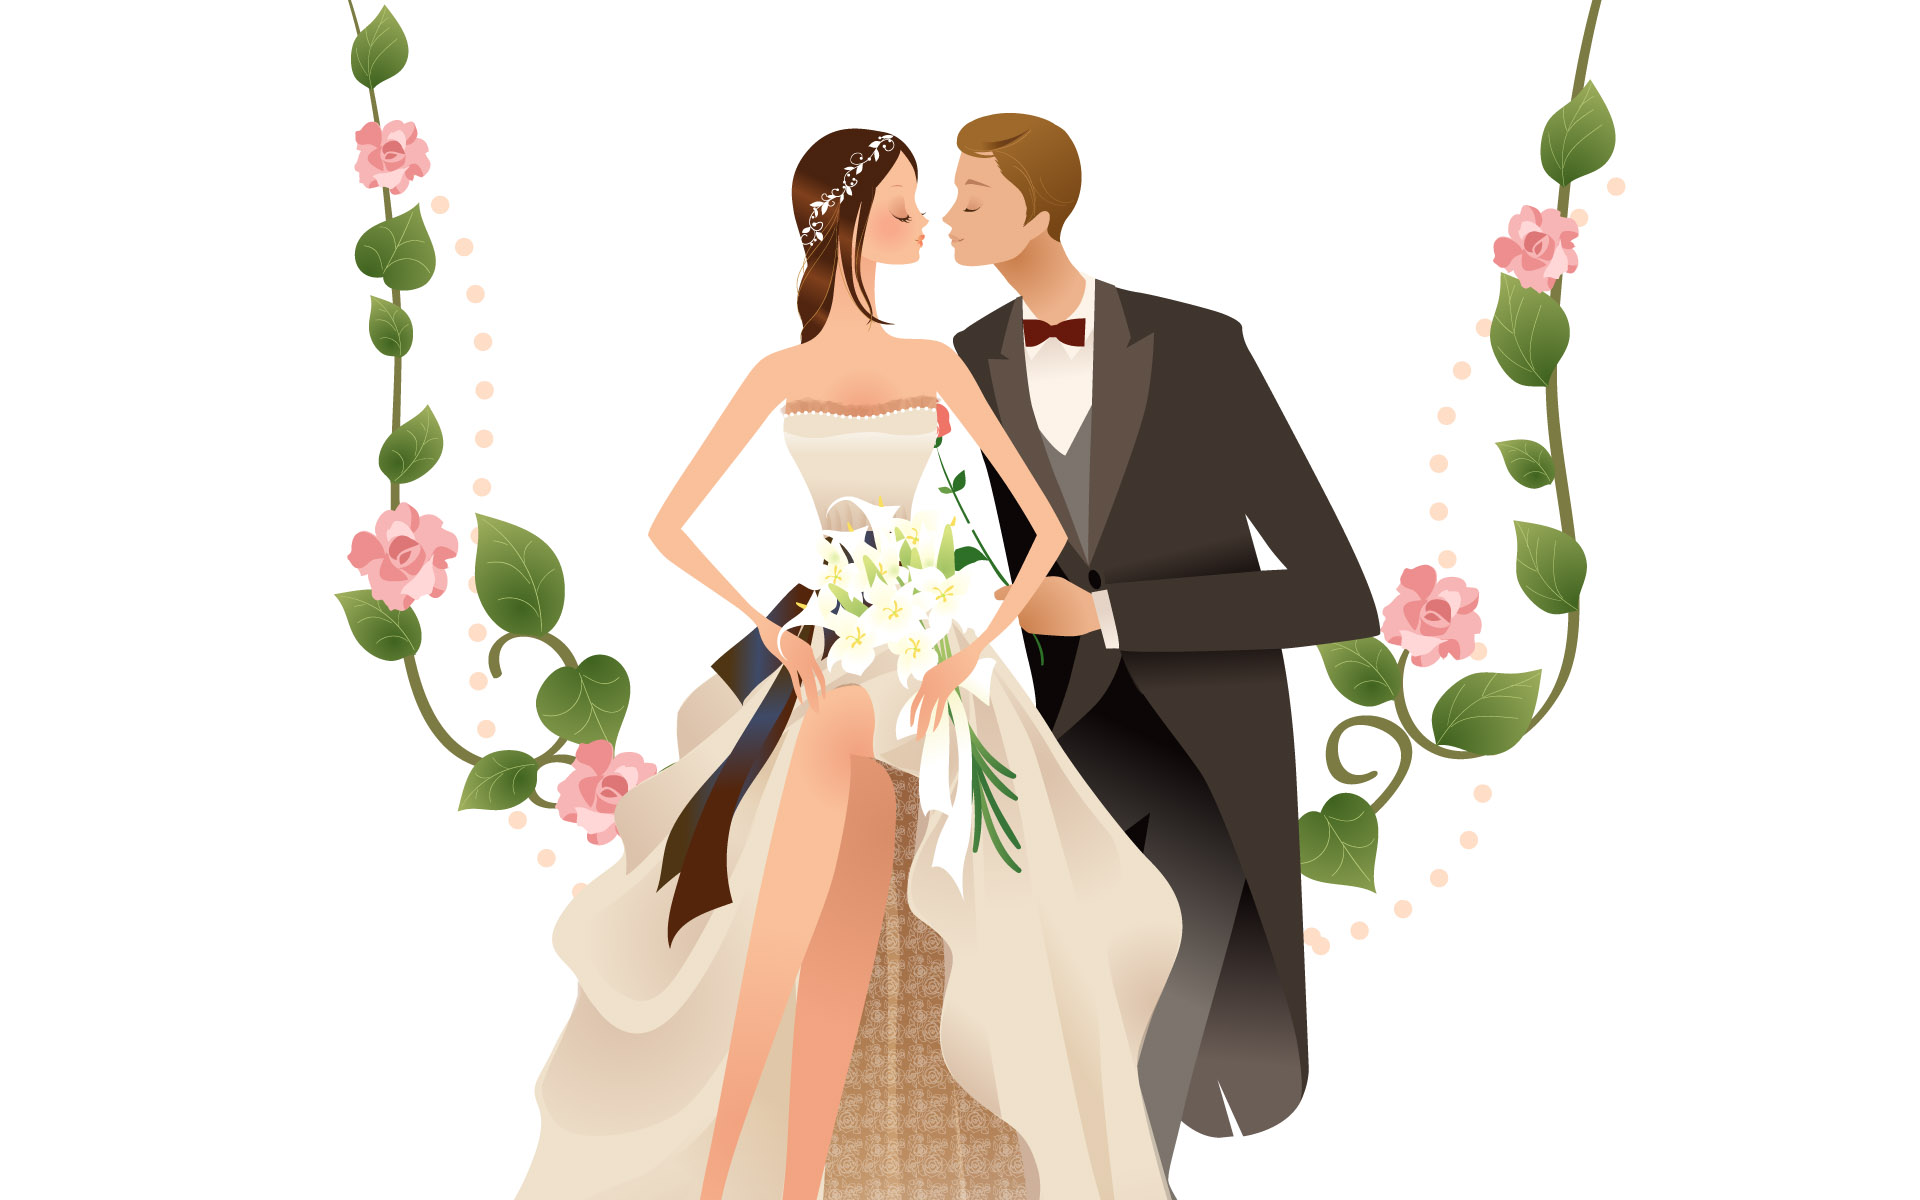 Free Wedding Couple Cartoon Images, Download Free Clip Art.